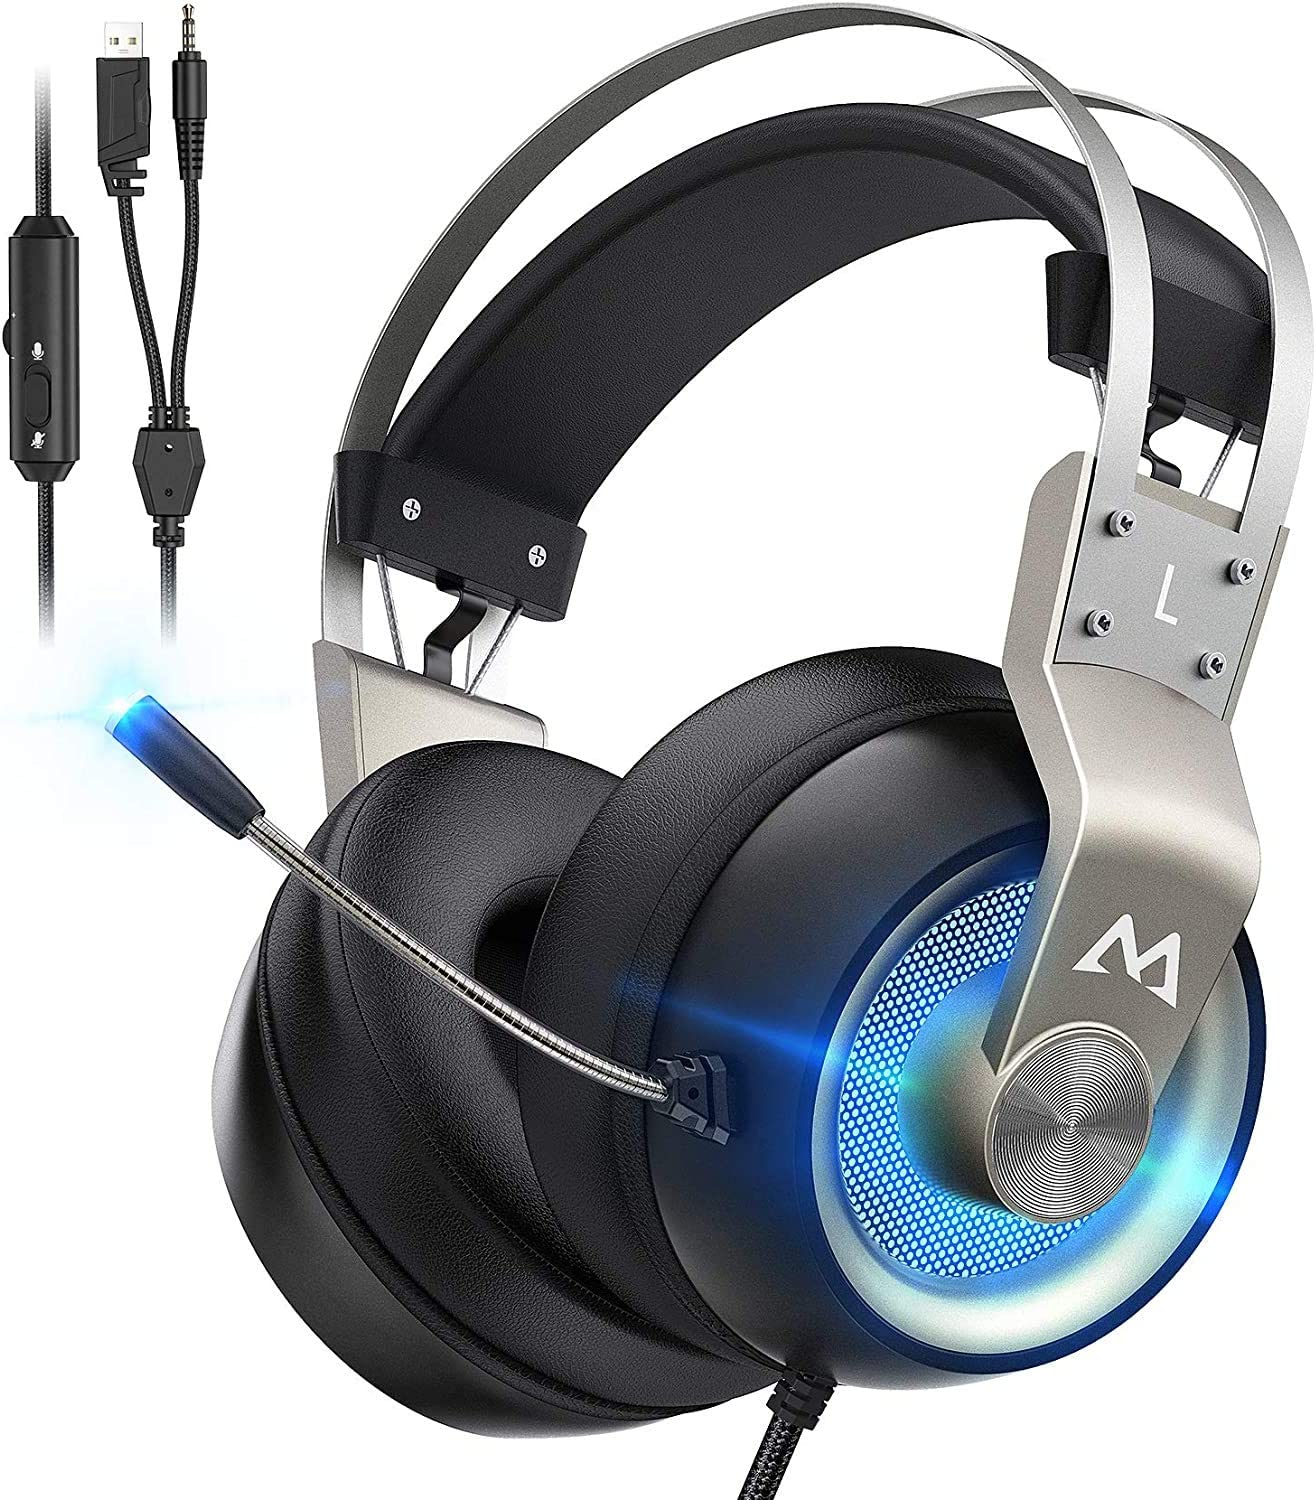 Mpow EG3 Pro Gaming Headset Xbox One Headset with 7.1 Surround Sound, PC PS4 Headset with Noise Canceling Mic & LED Light, Compatible with PC, PS4, PS5, Switch, Xbox One Controller